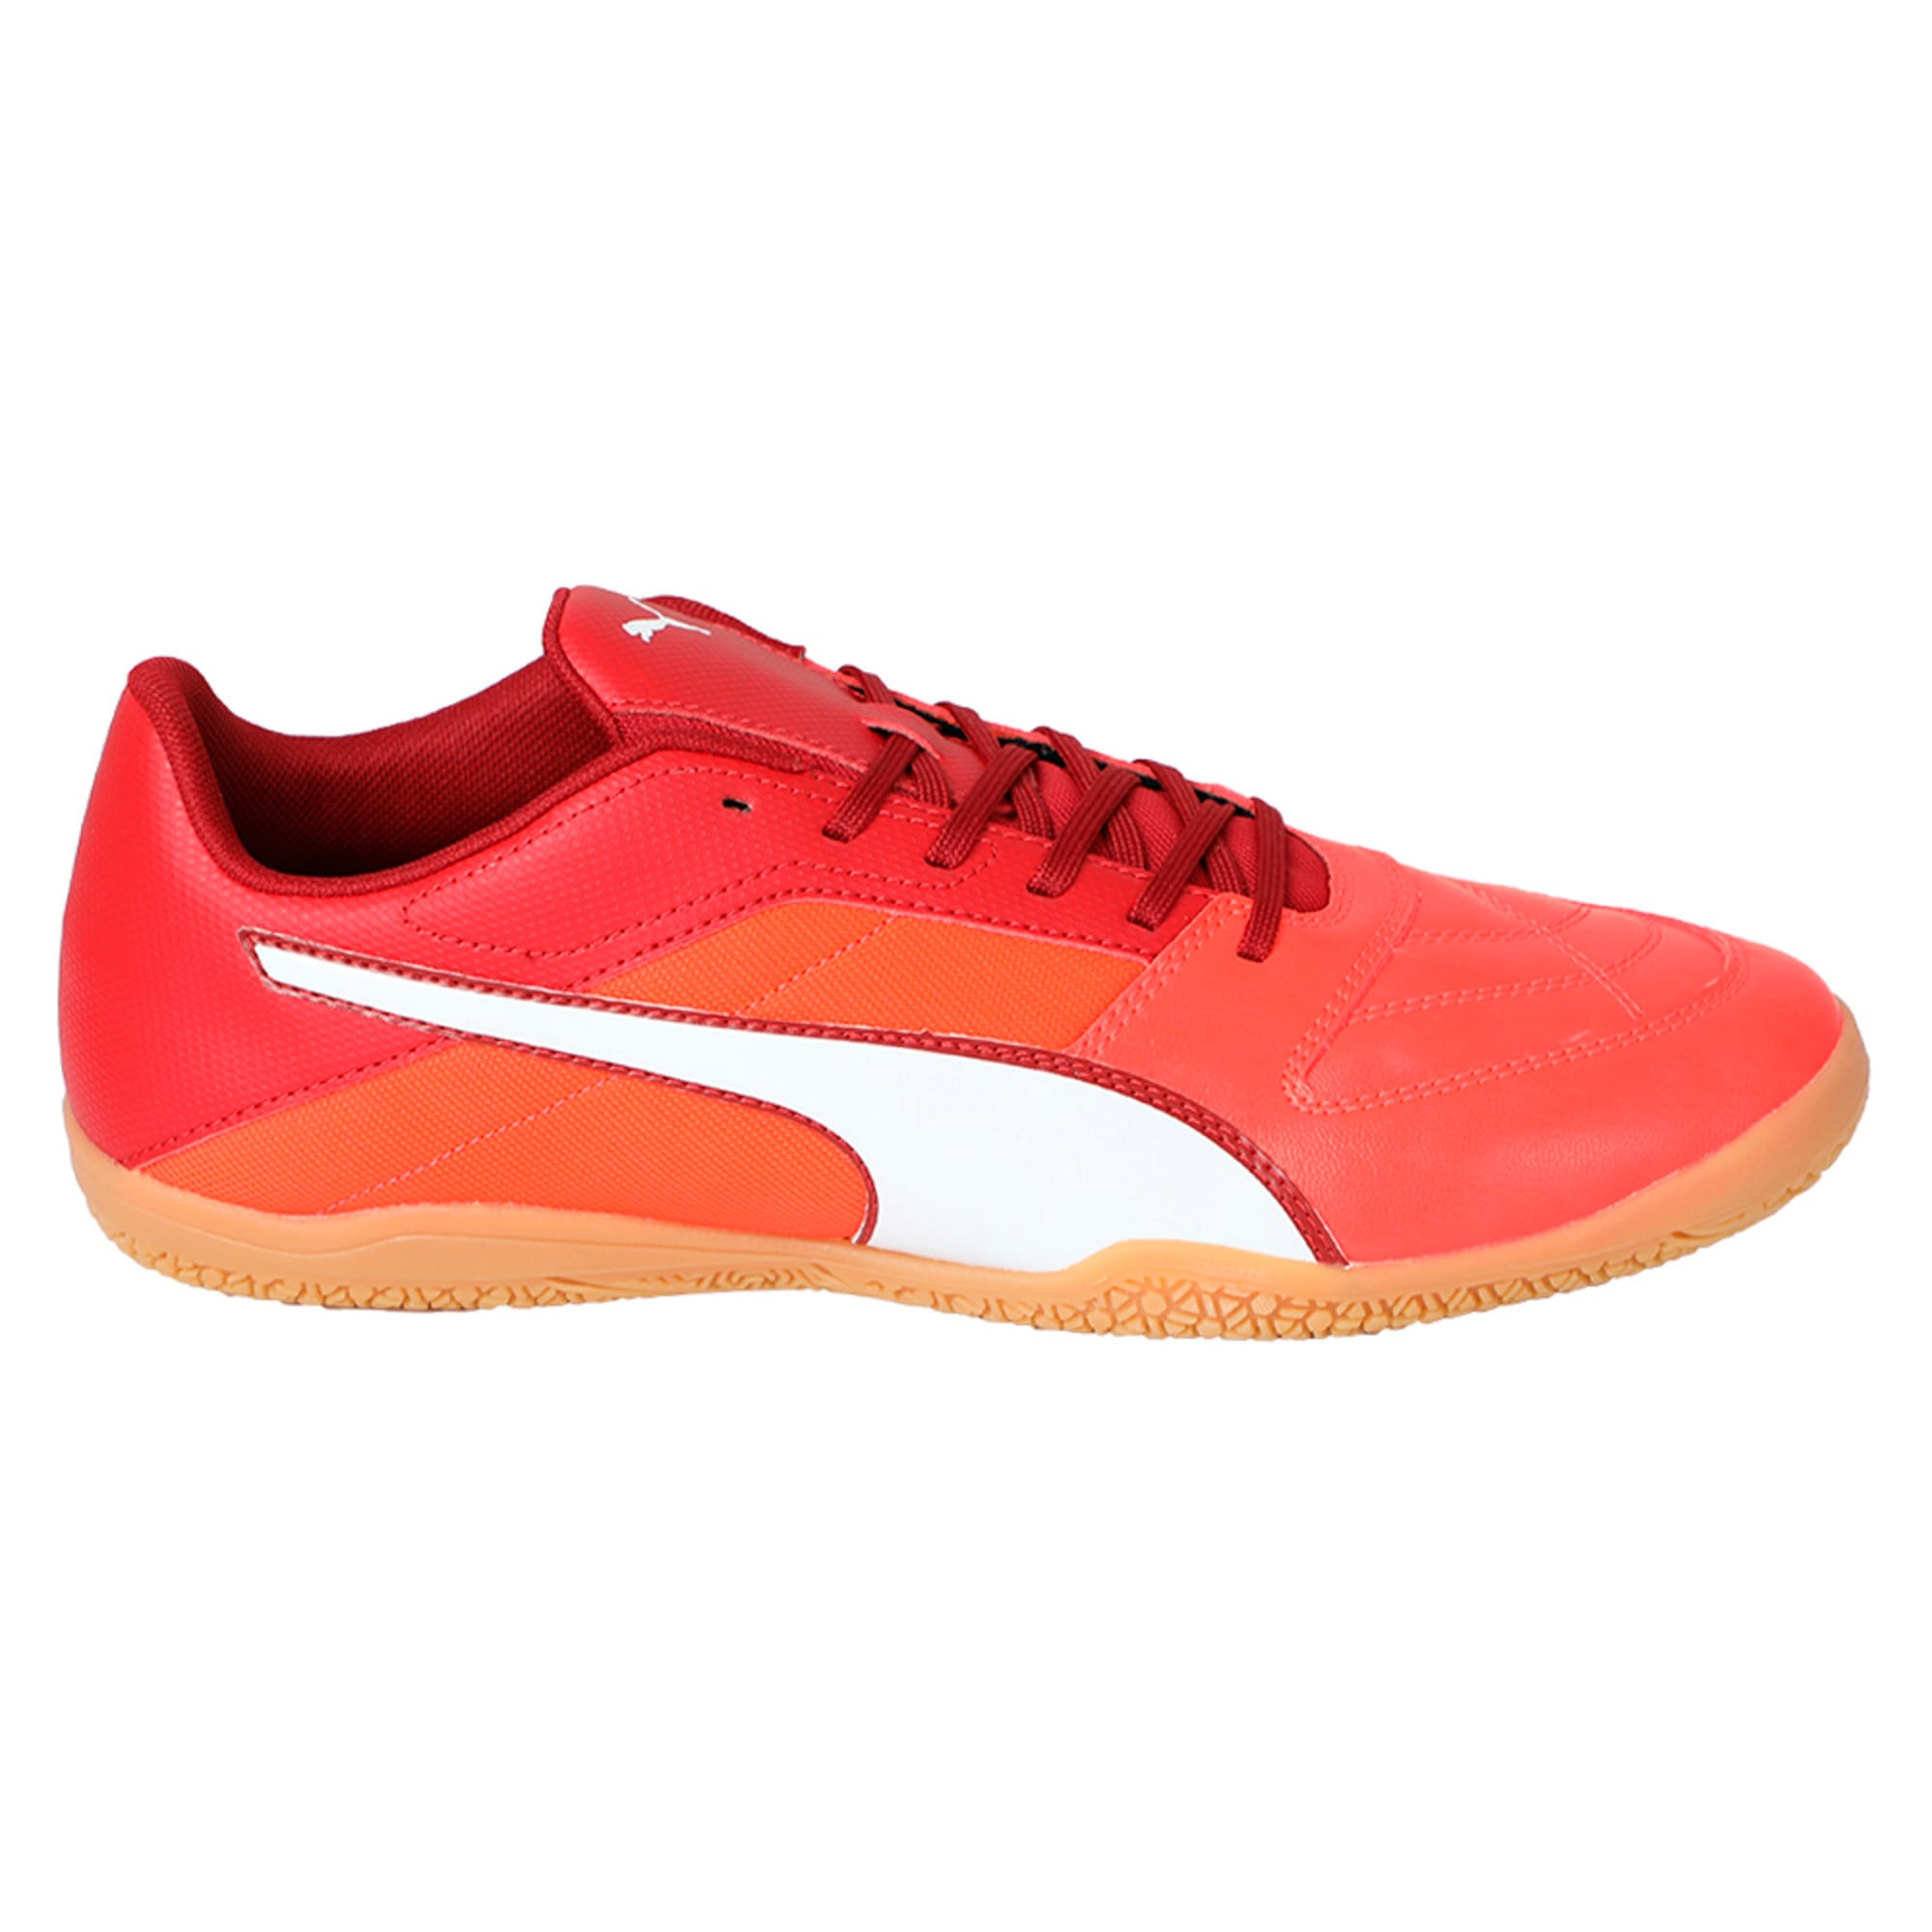 Thumbnail 5 of Gavetto II Men's Futsal Shoes, Red-White-Red Dahlia, medium-IND